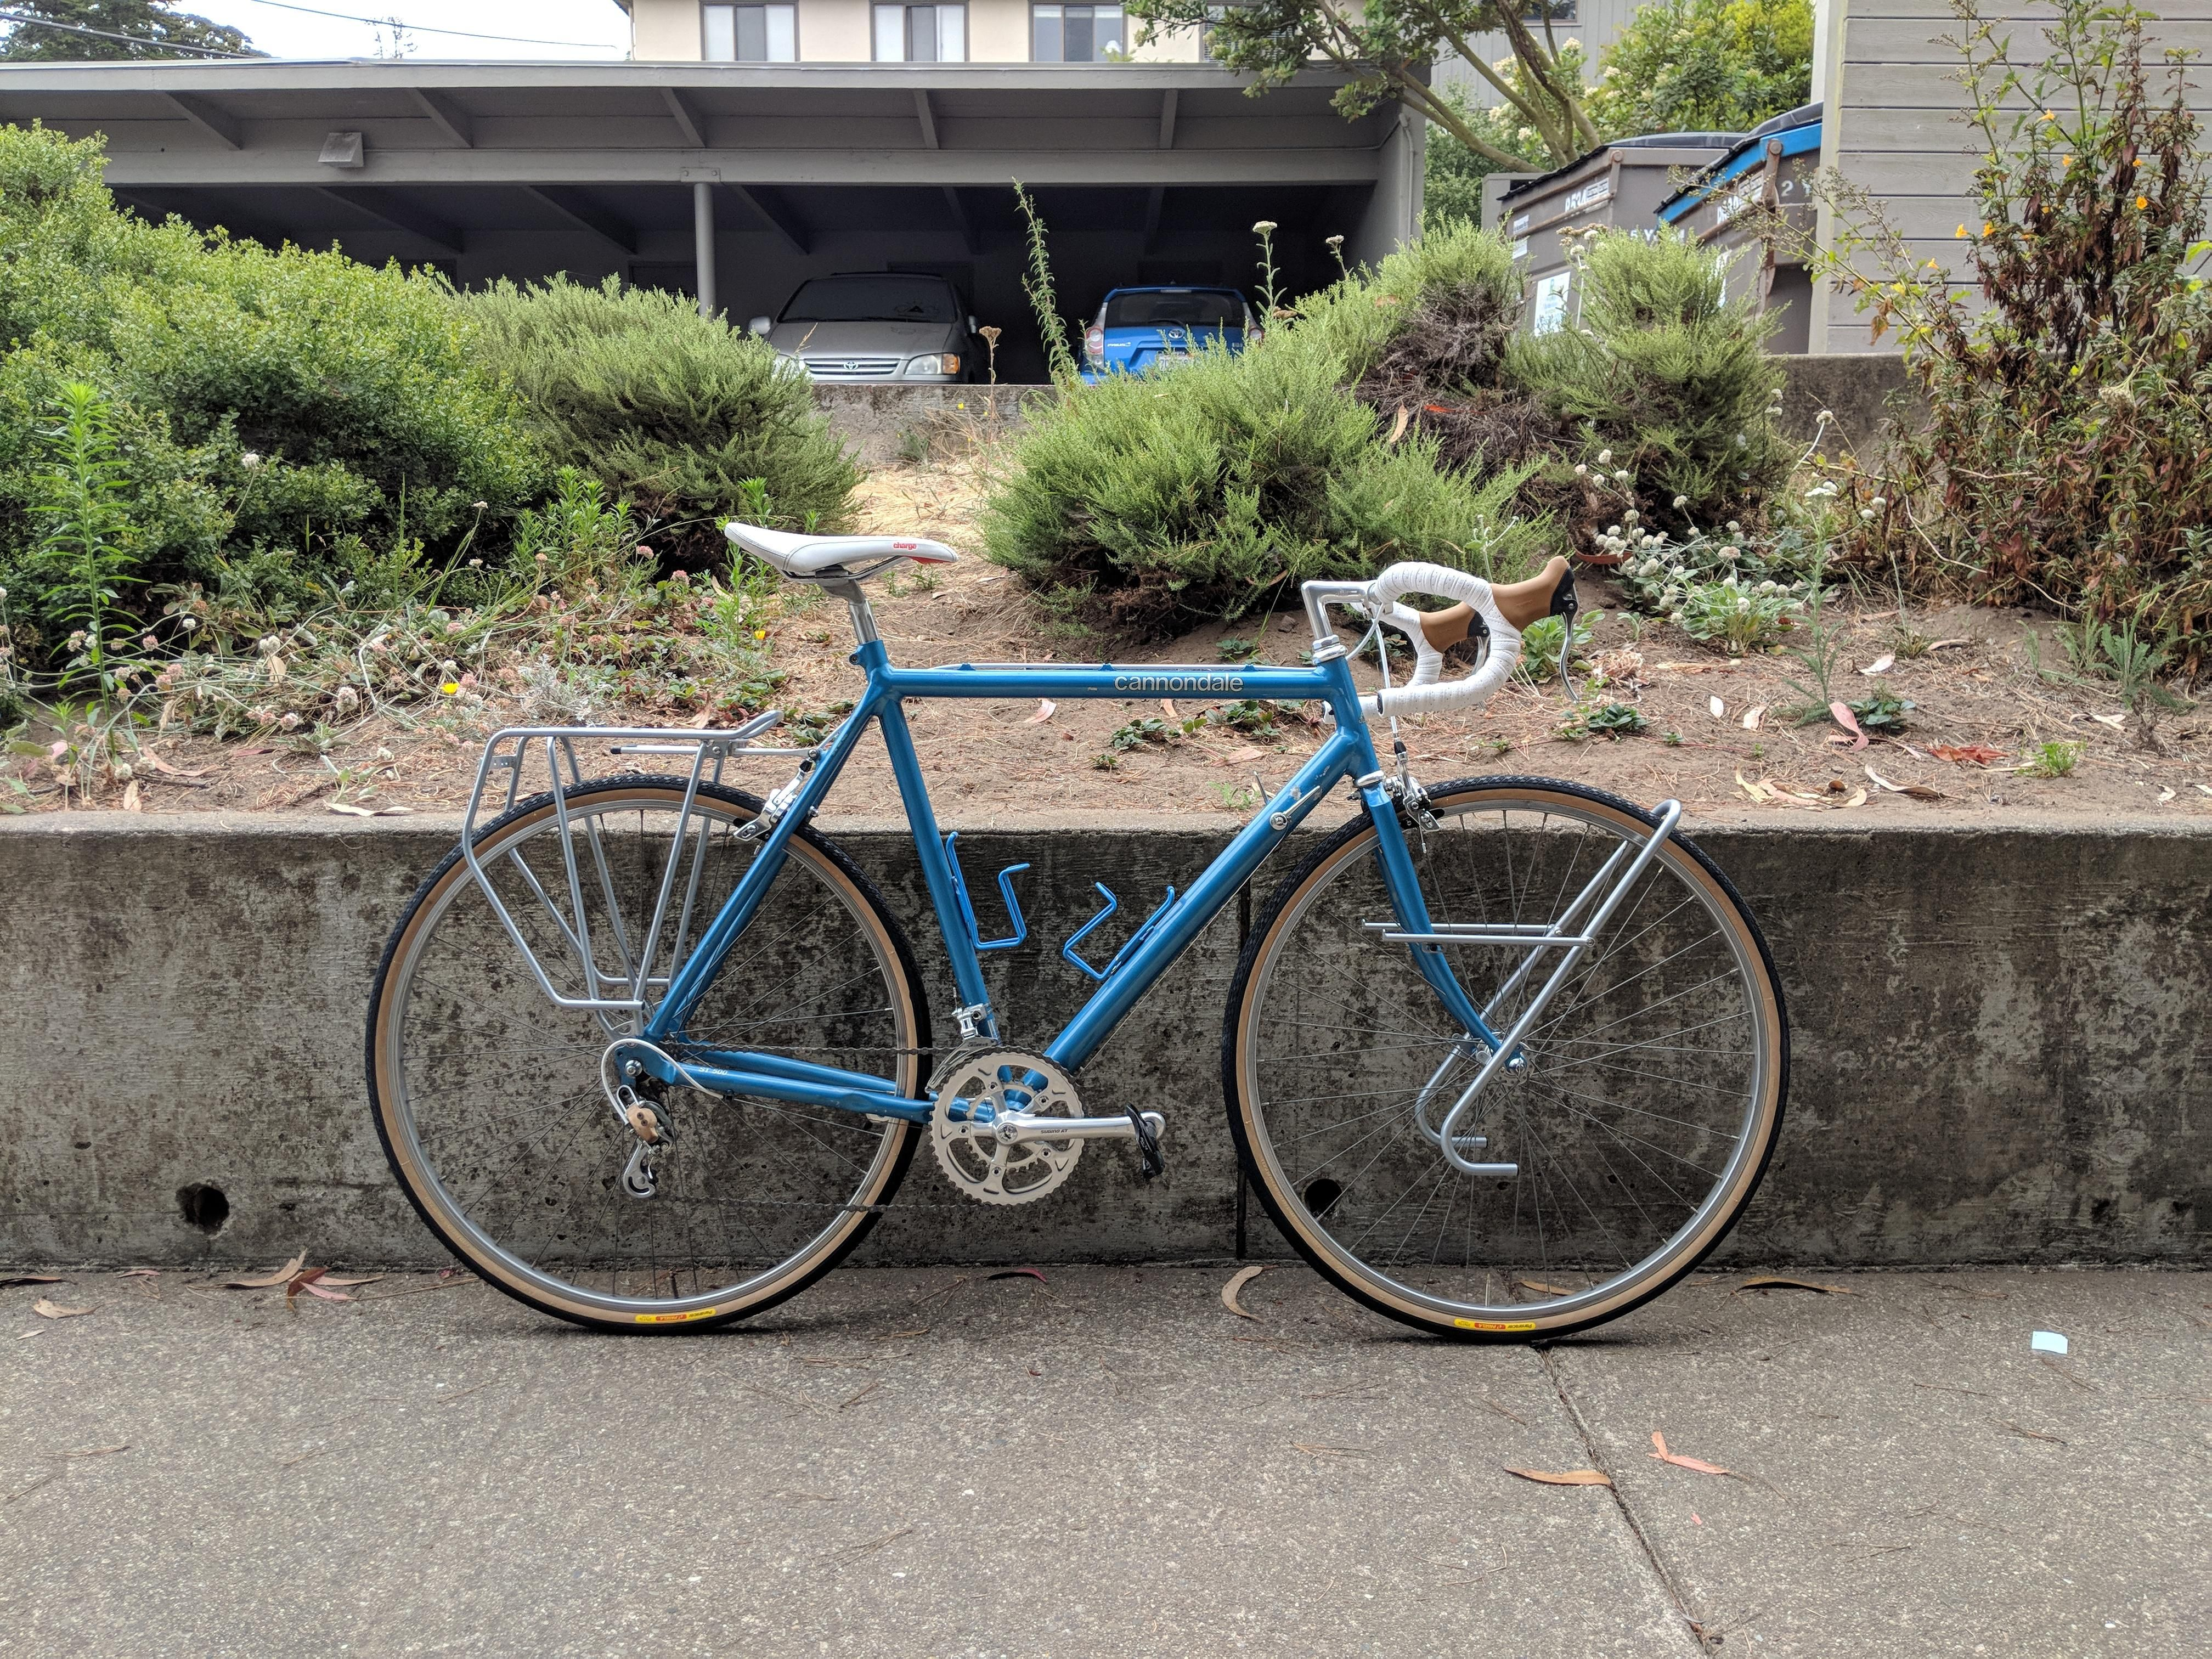 1985 Cannondale St 500 Touring Bike With Images Touring